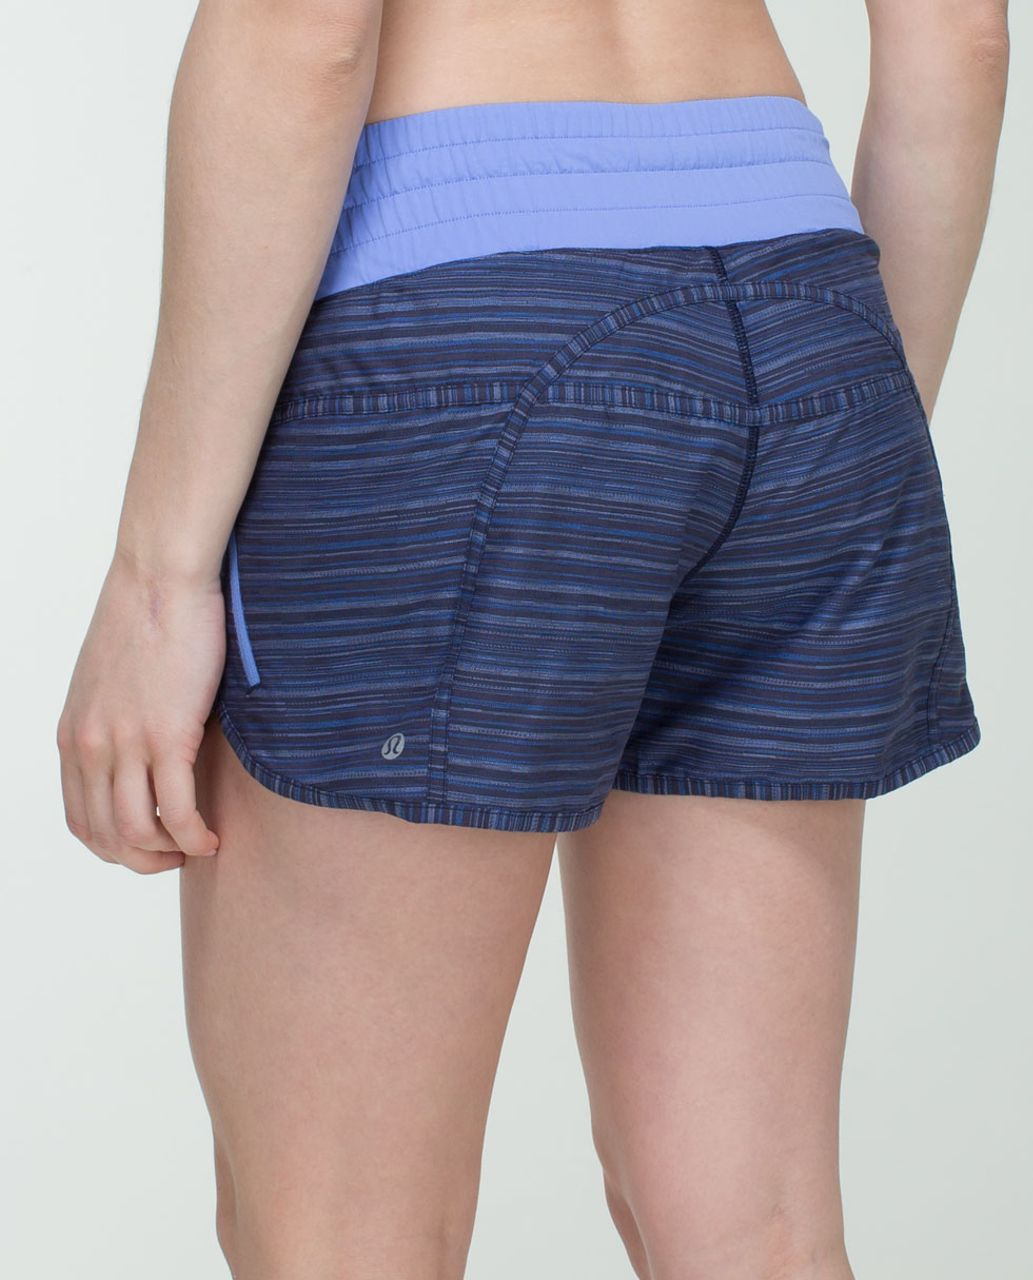 Lululemon Tracker Short II *2-way Stretch - Wee Are From Space Cadet Blue / Lullaby